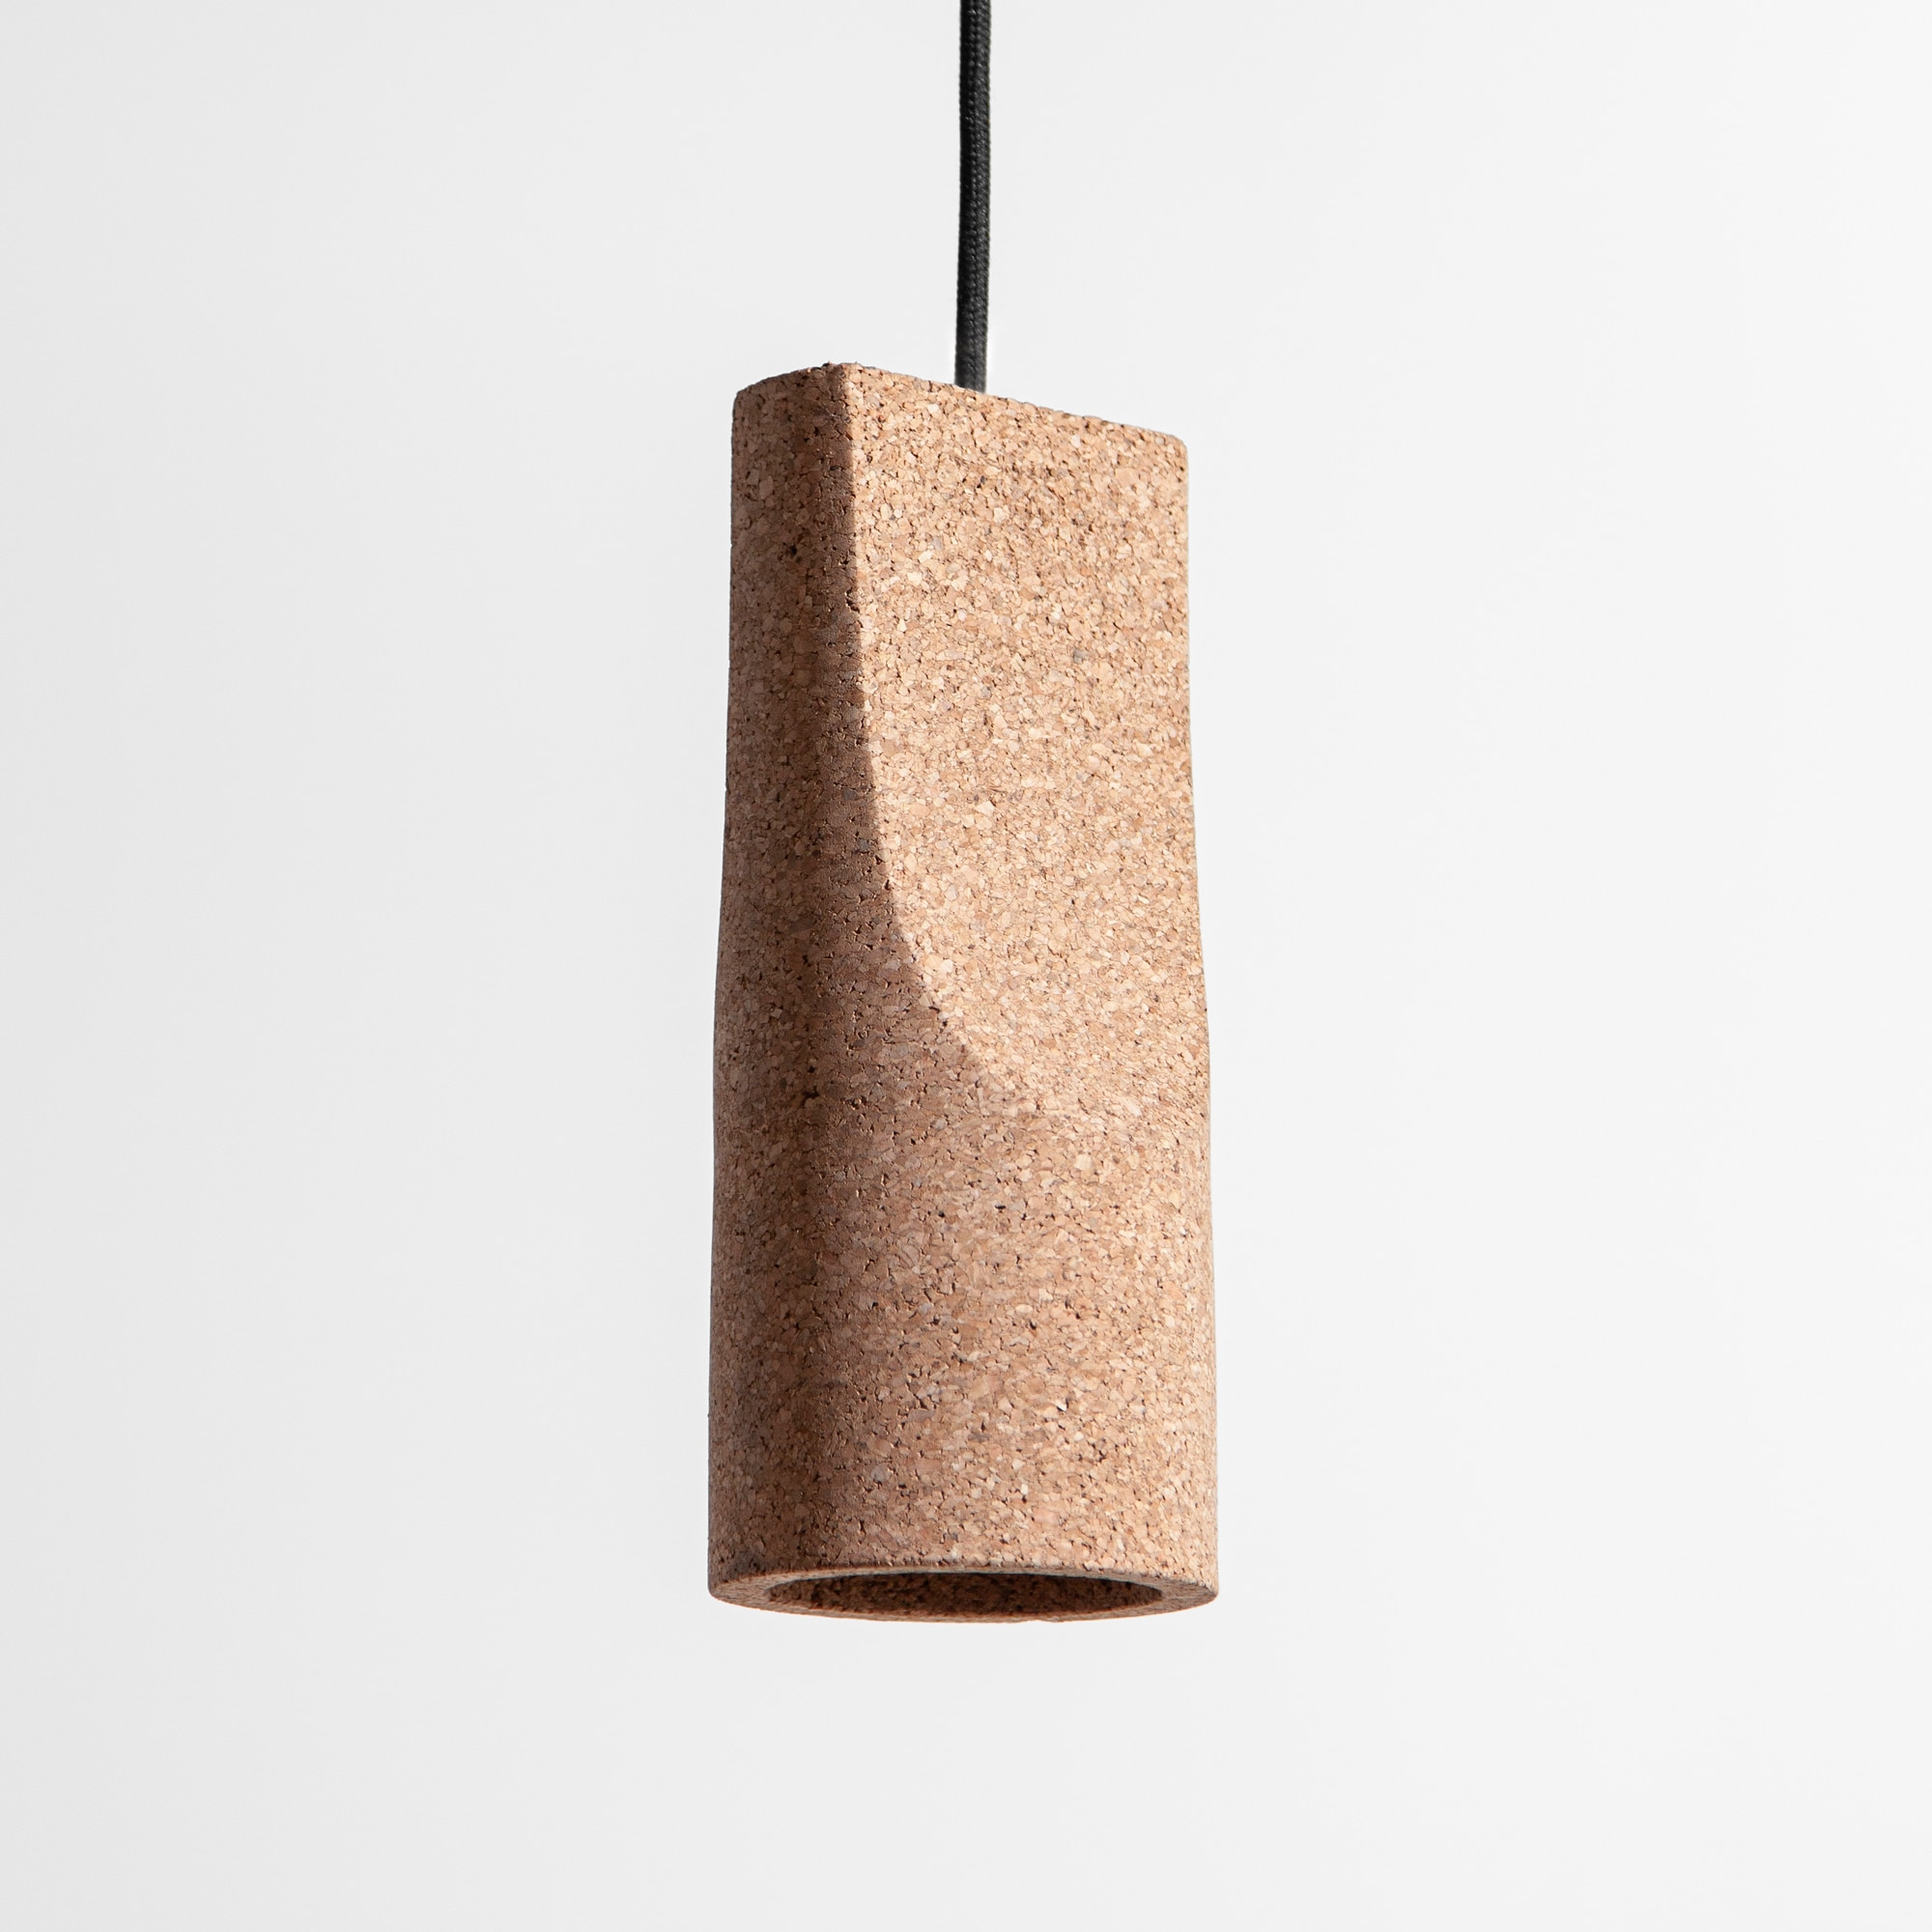 Cork Lamp for Hall- DESIGN BY MIGUEL SOEIRO